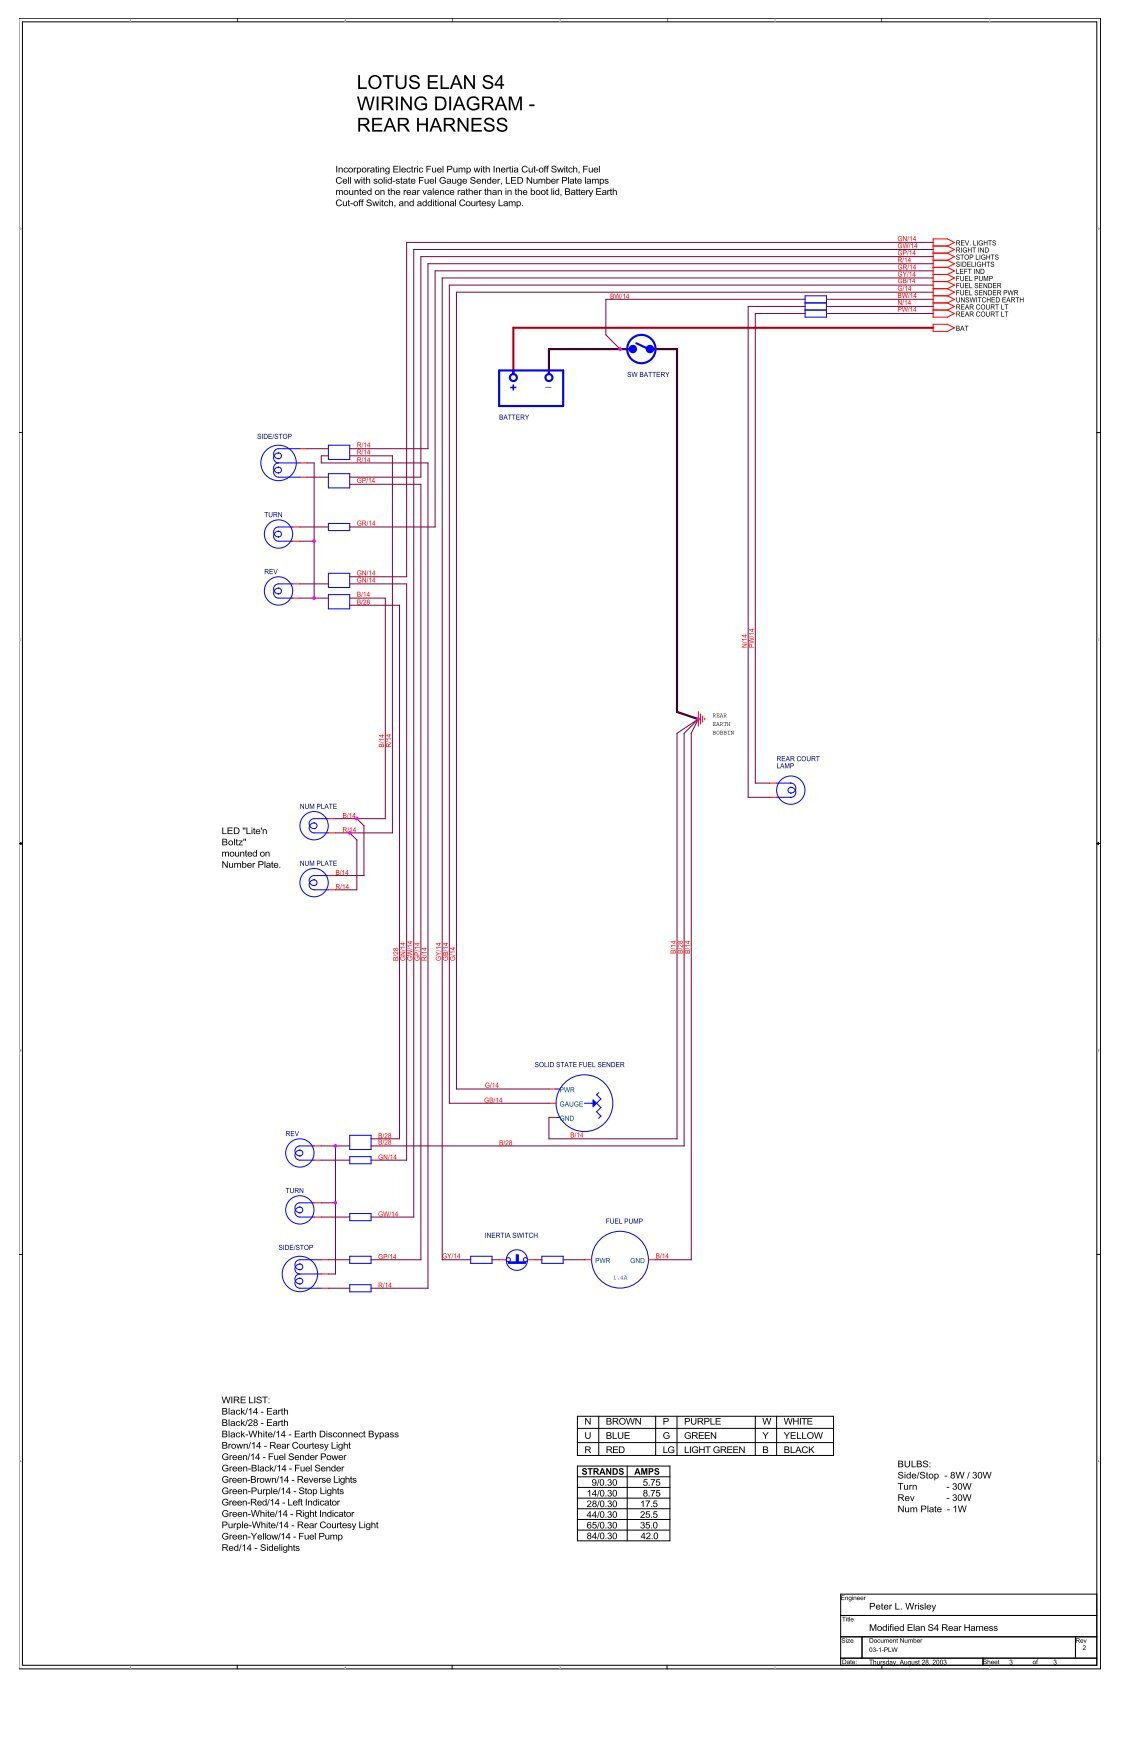 1996 Ez Go Wiring Diagram With Alltrax : 38 Wiring Diagram